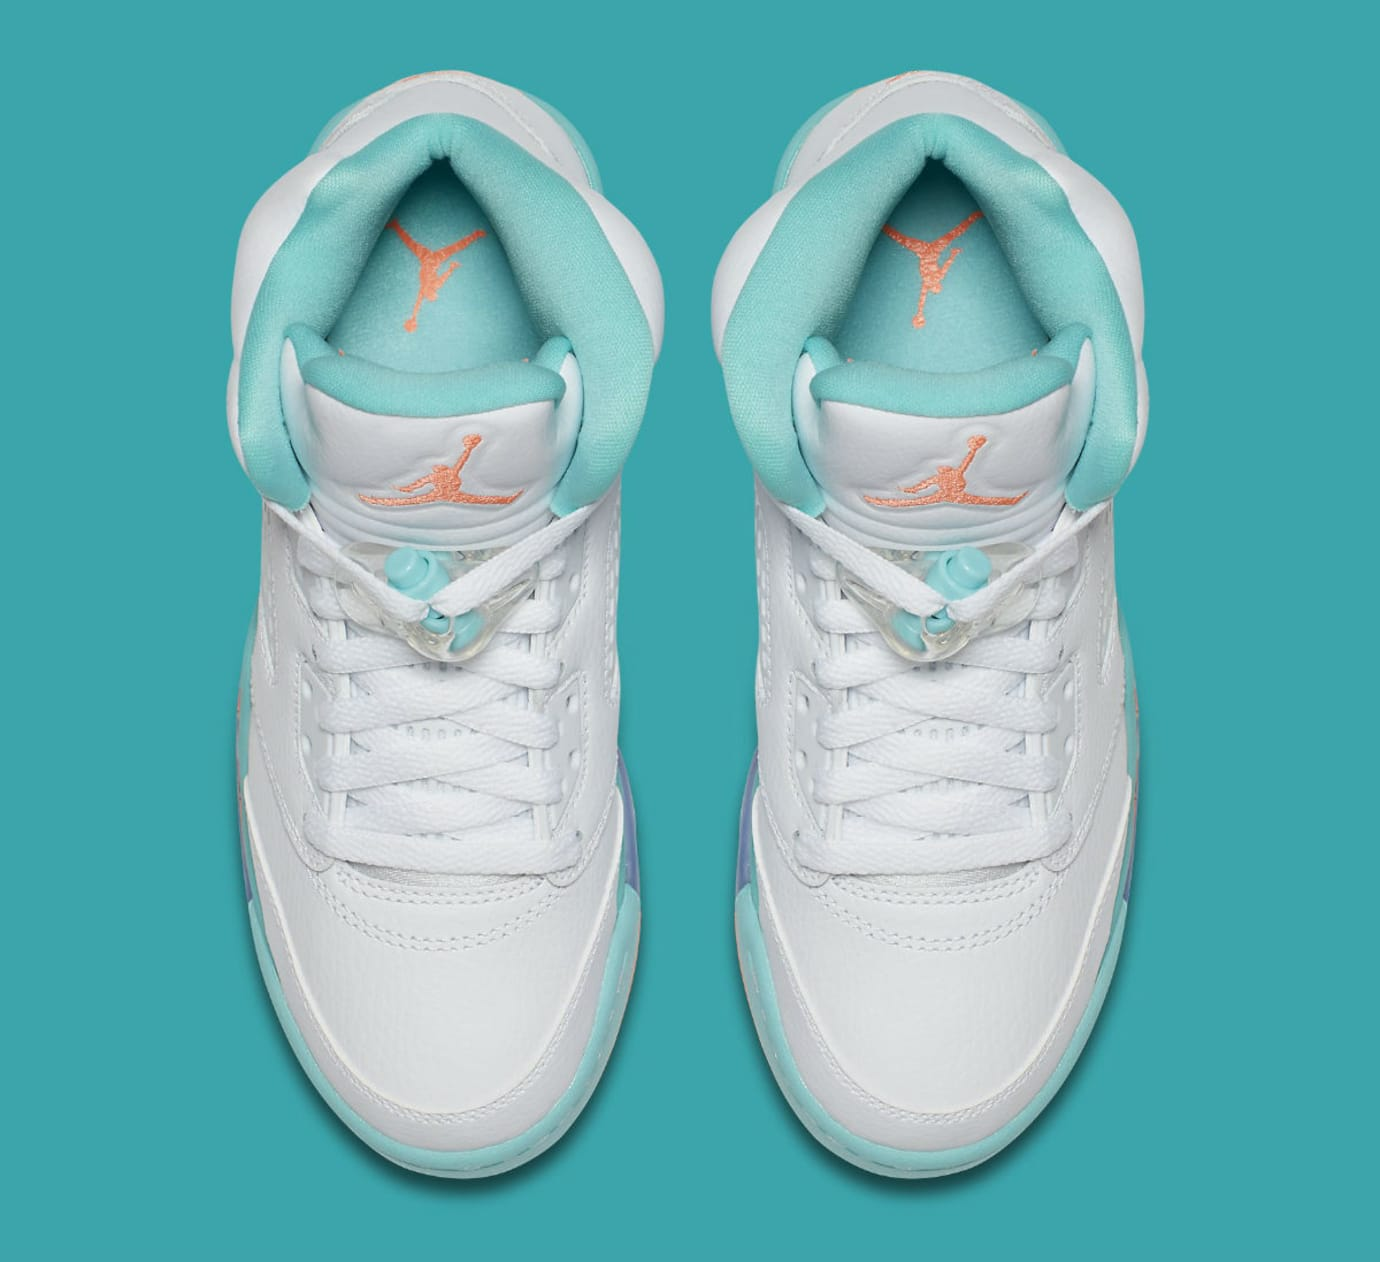 quality design 12d17 8c83d Image via Nike Air Jordan 5 V GS White Crimson Pulse Light Aqua Release  Date 440892-100 Top